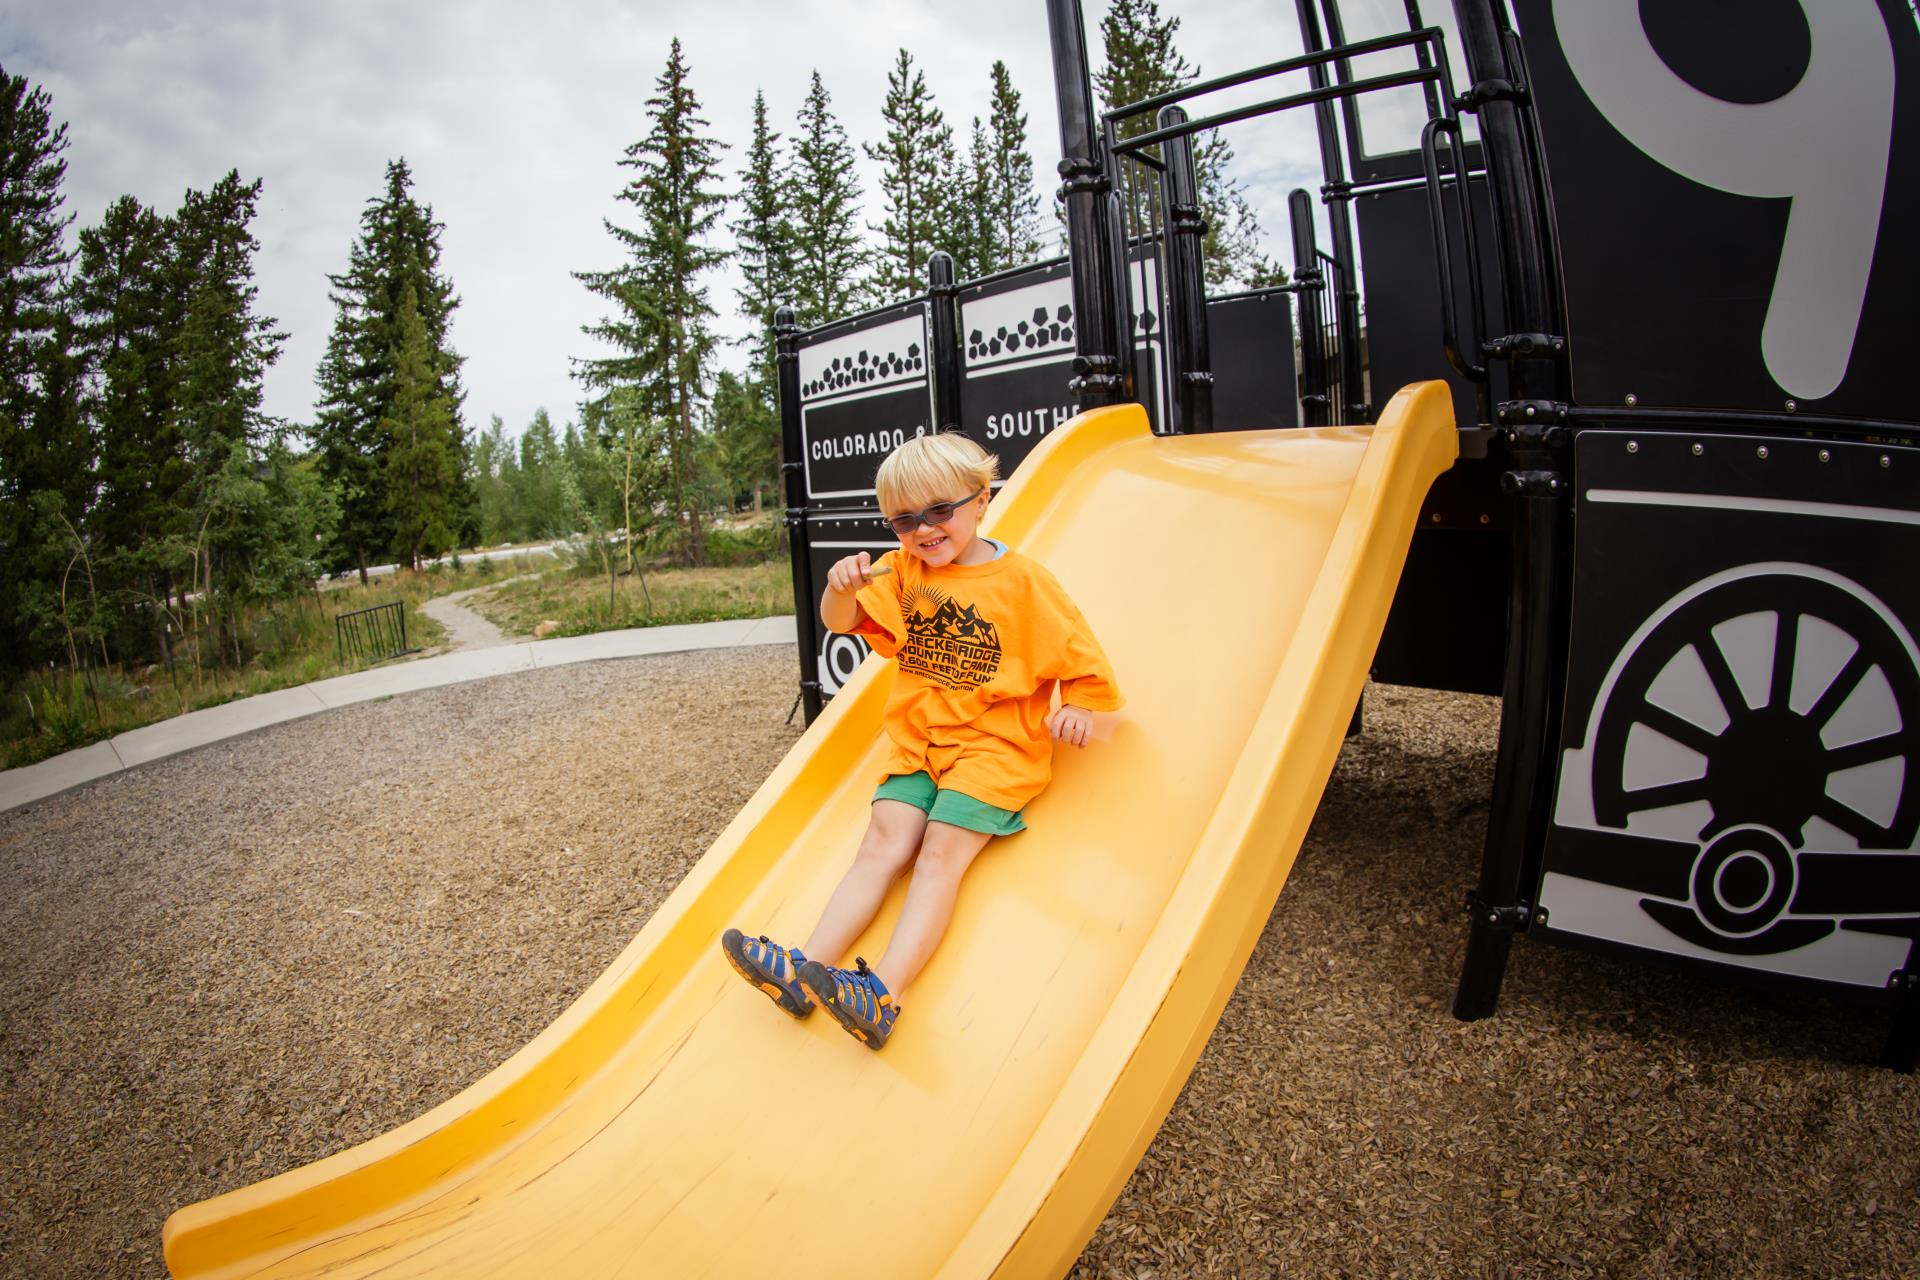 One young boy on slide at the Railroad Playground